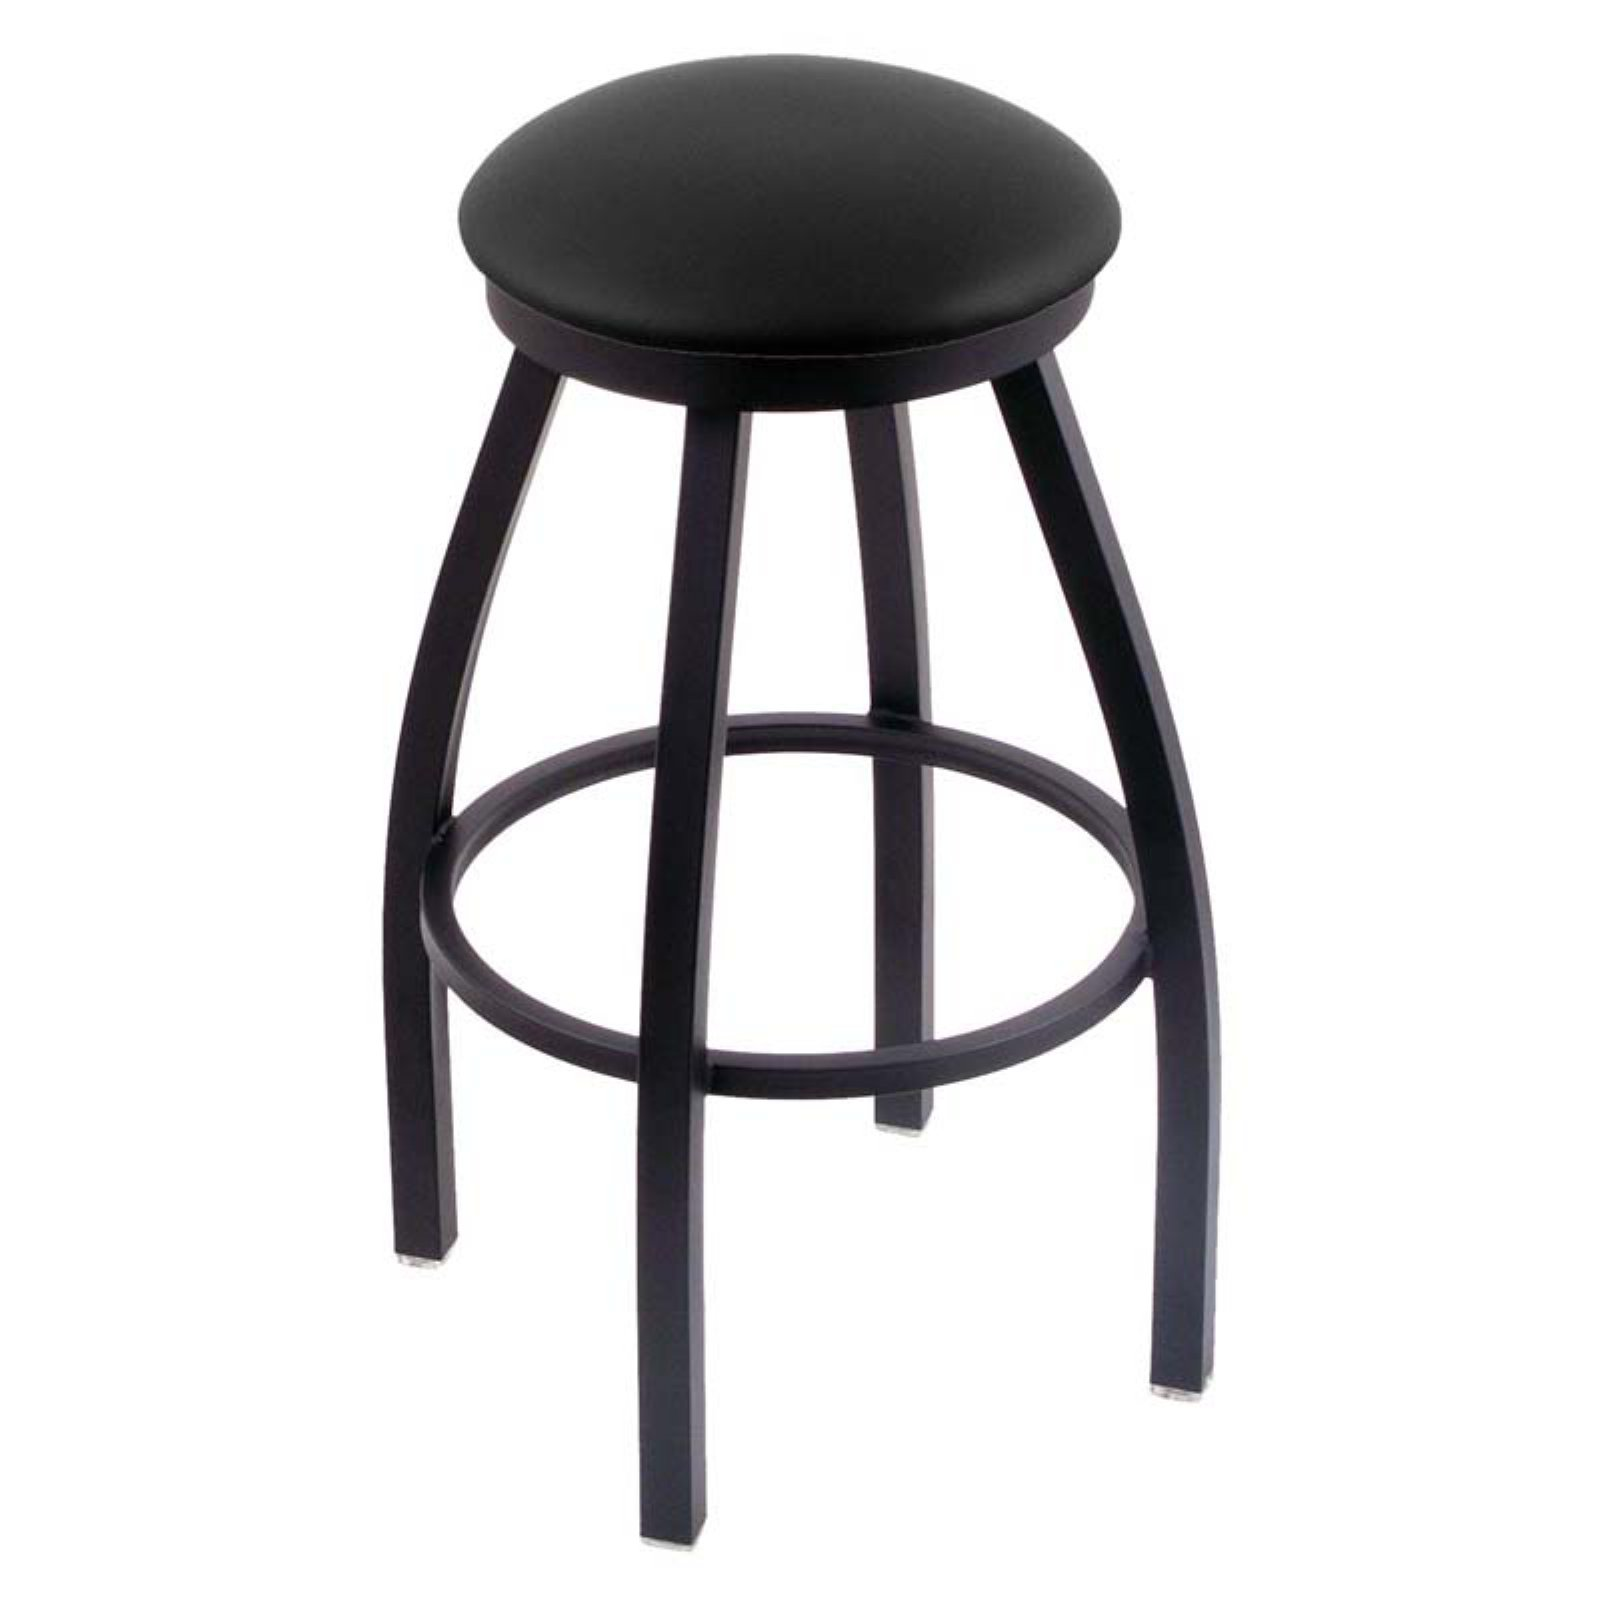 Holland Bar Stool Misha 25 in. Swivel Counter Stool with Faux Leather Seat